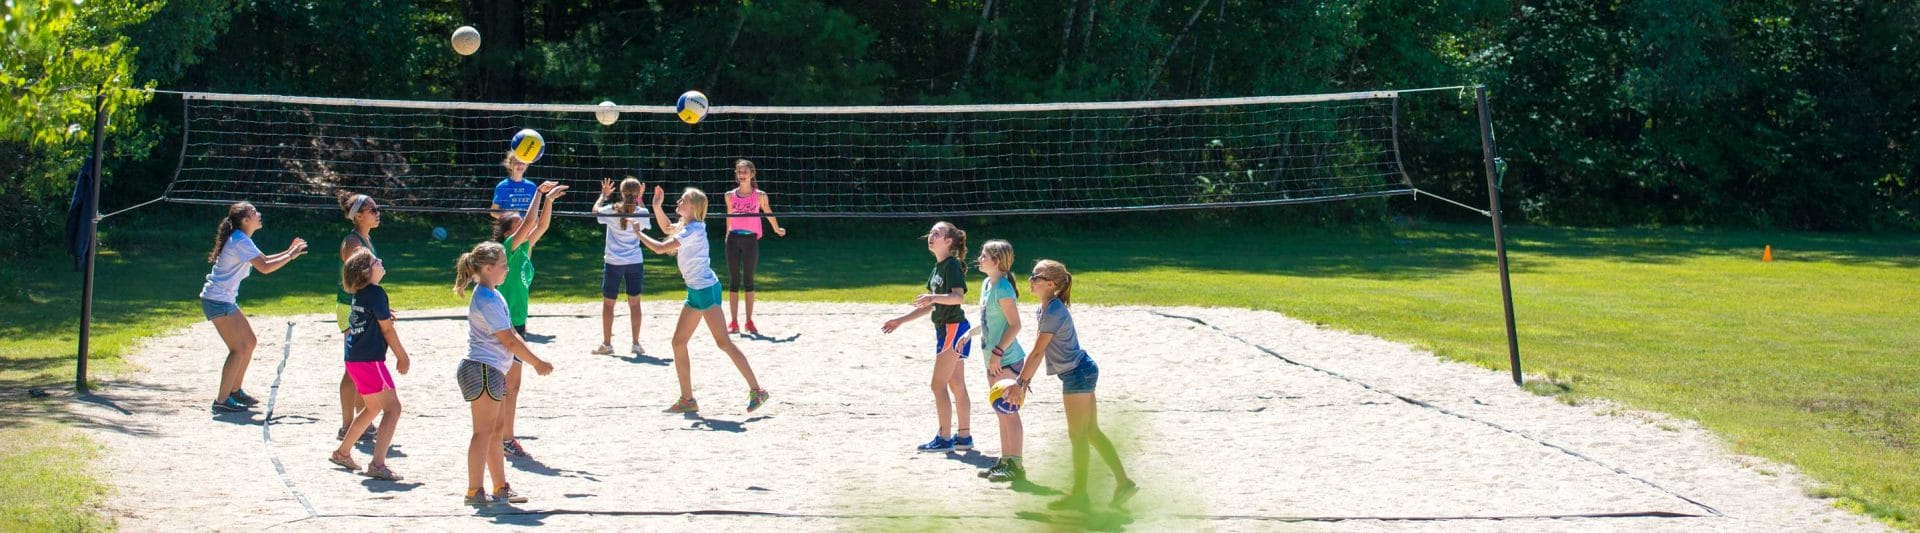 campers playing beach volleyball on a sand court